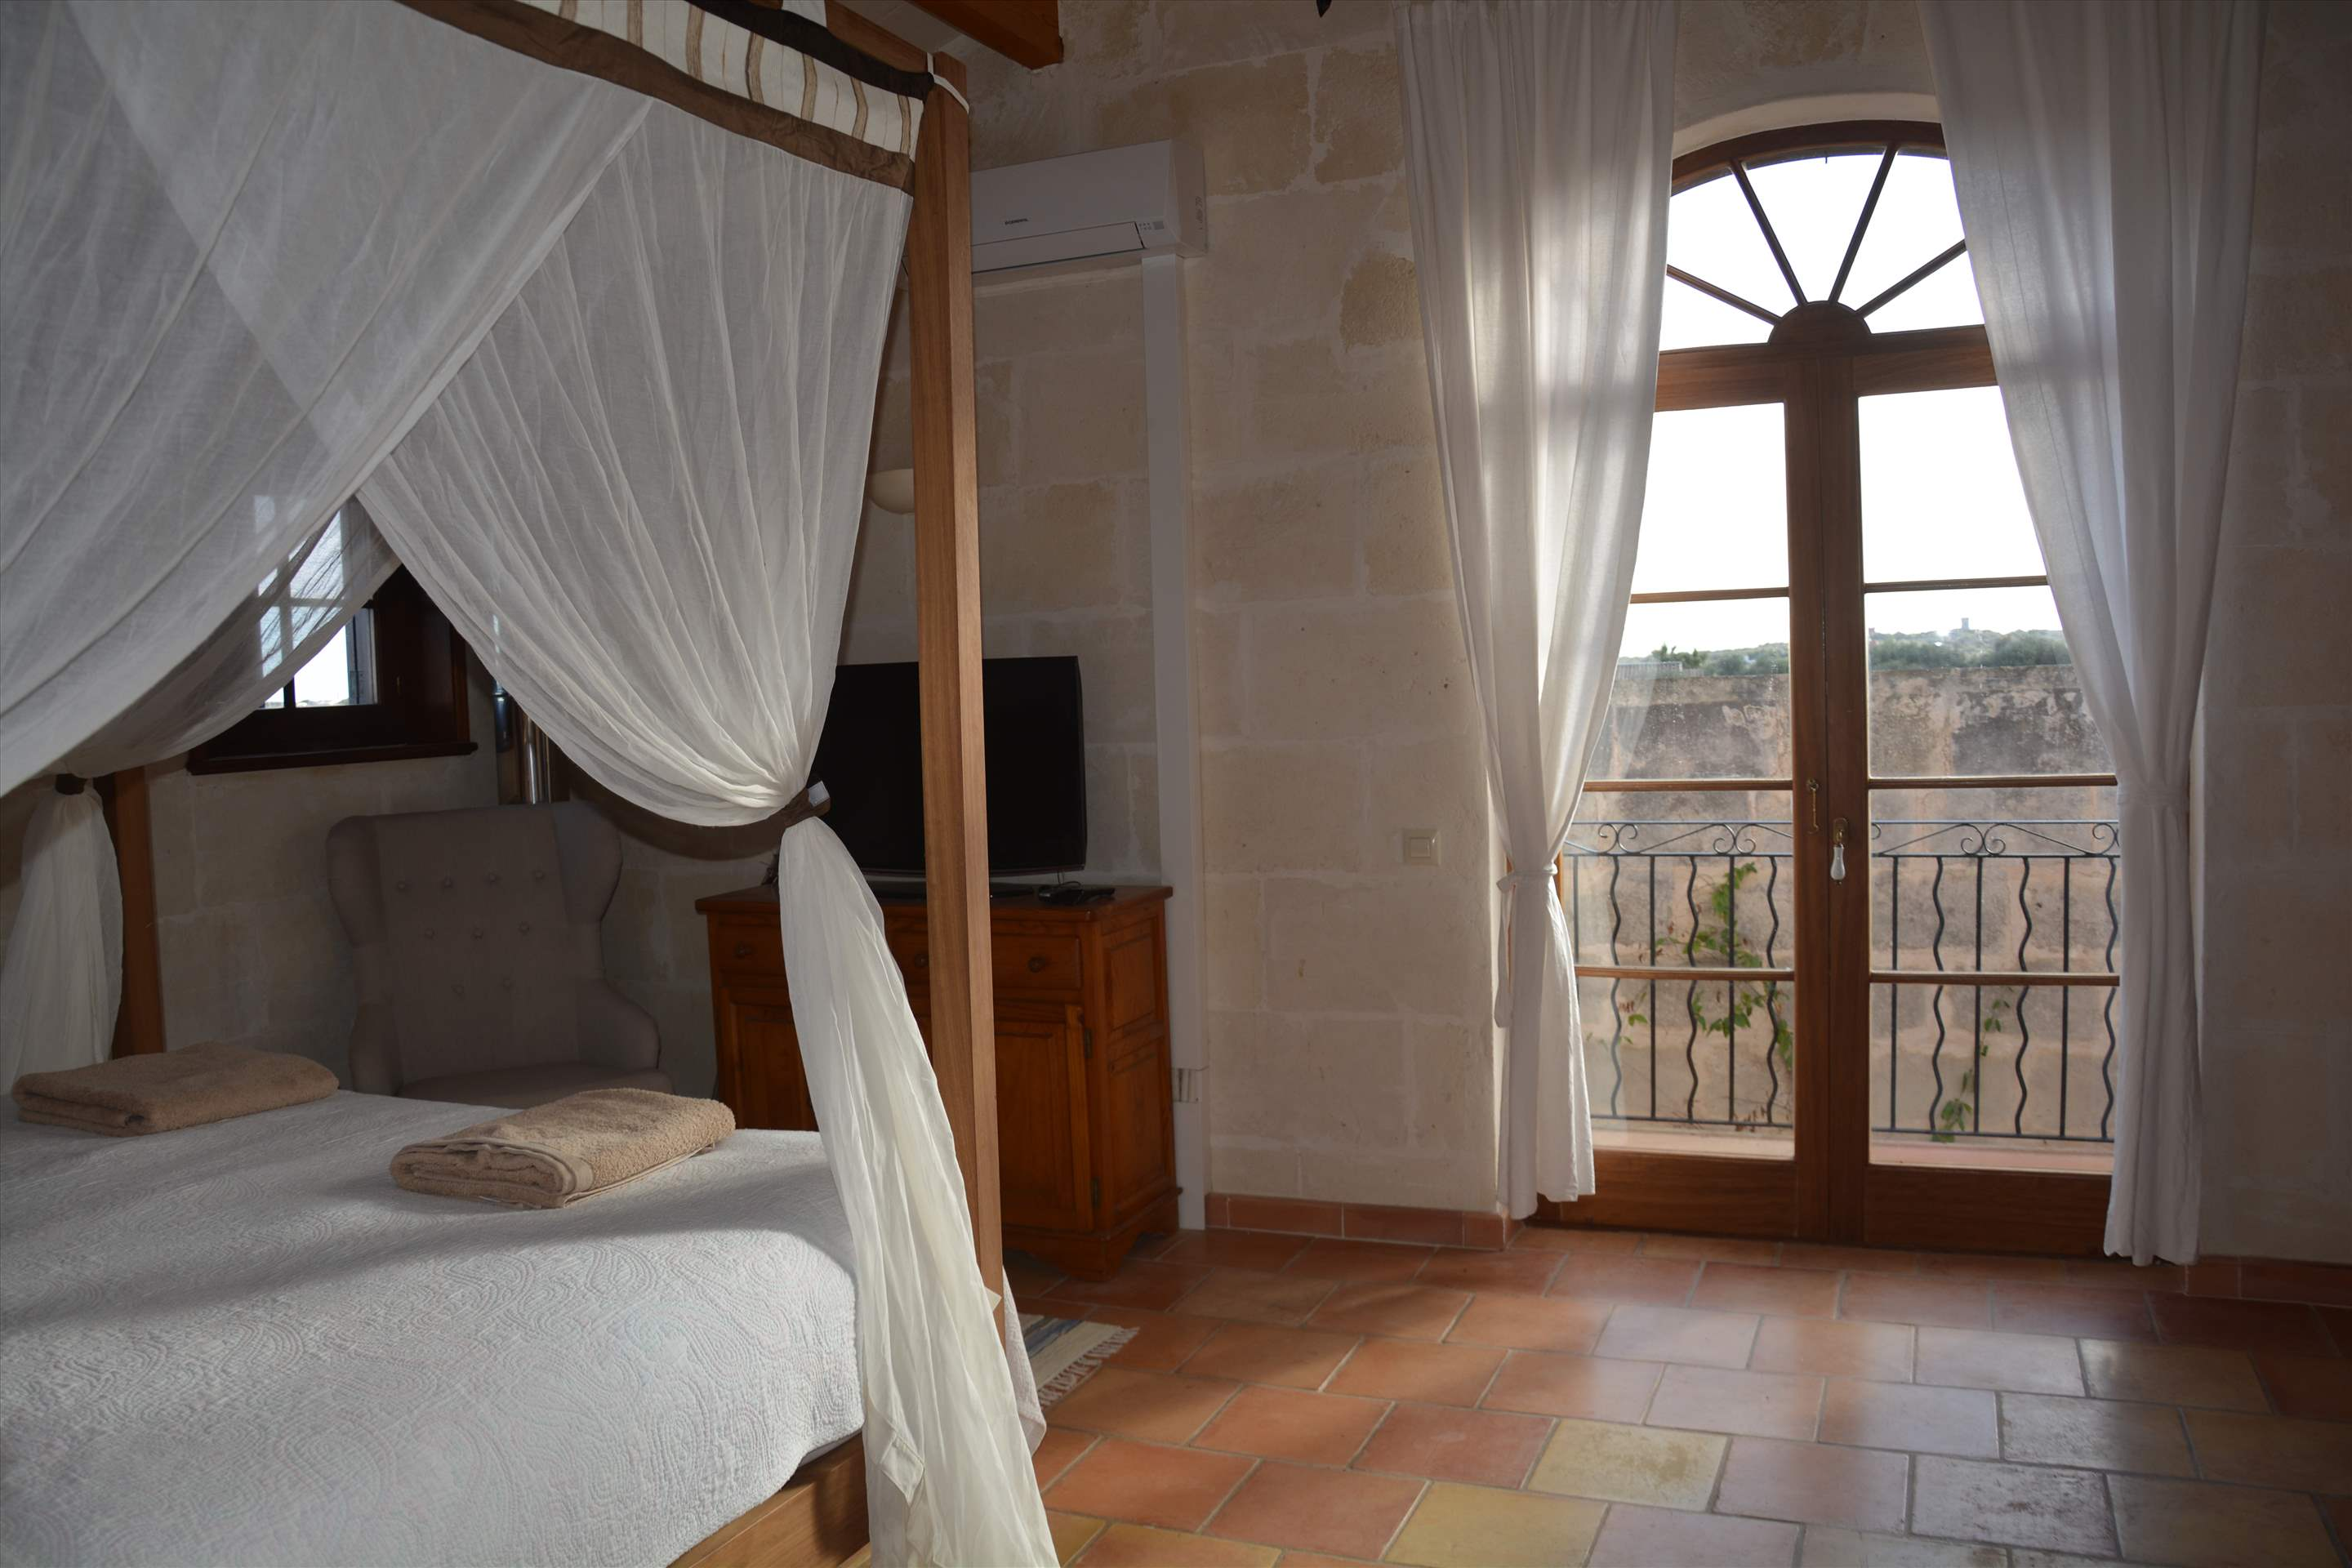 Les Arcs, 5 bedroom villa in Mahon, San Luis & South East, Menorca Photo #24